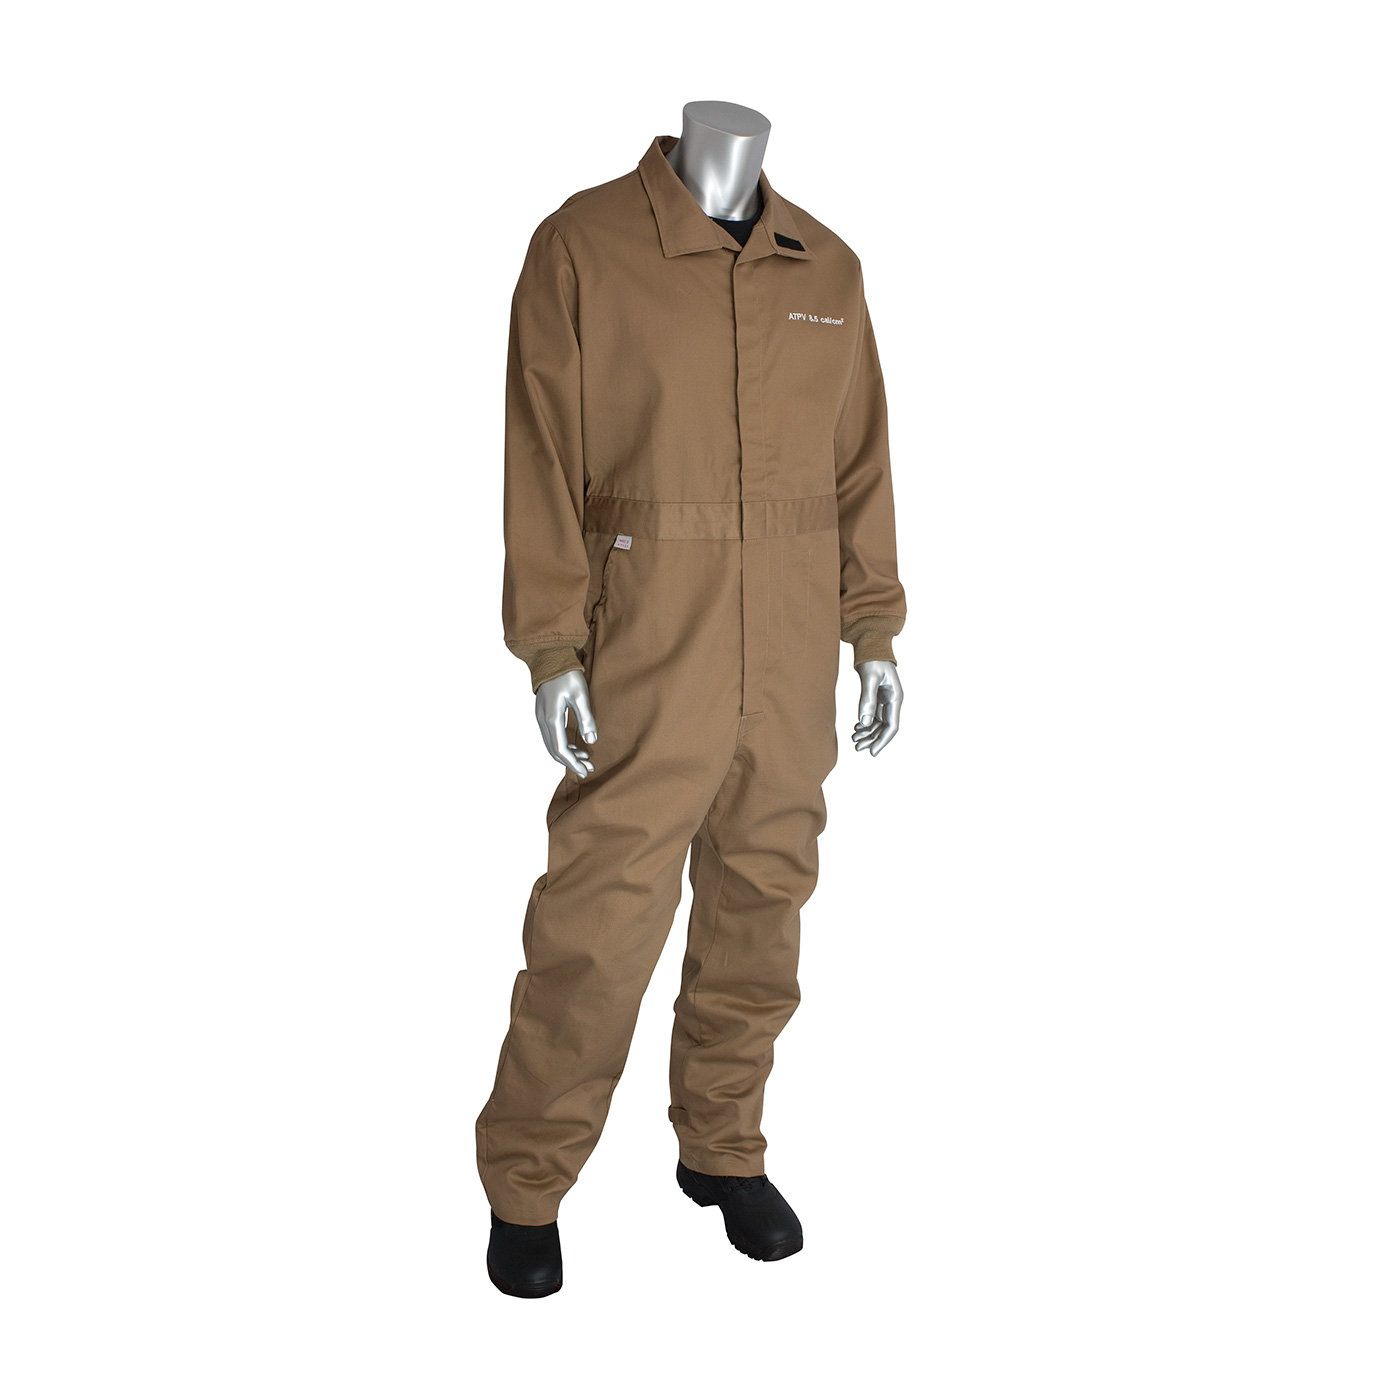 AR/FR Dual Certified Coverall with Vented Back - 8 Cal/cm2, Tan, S